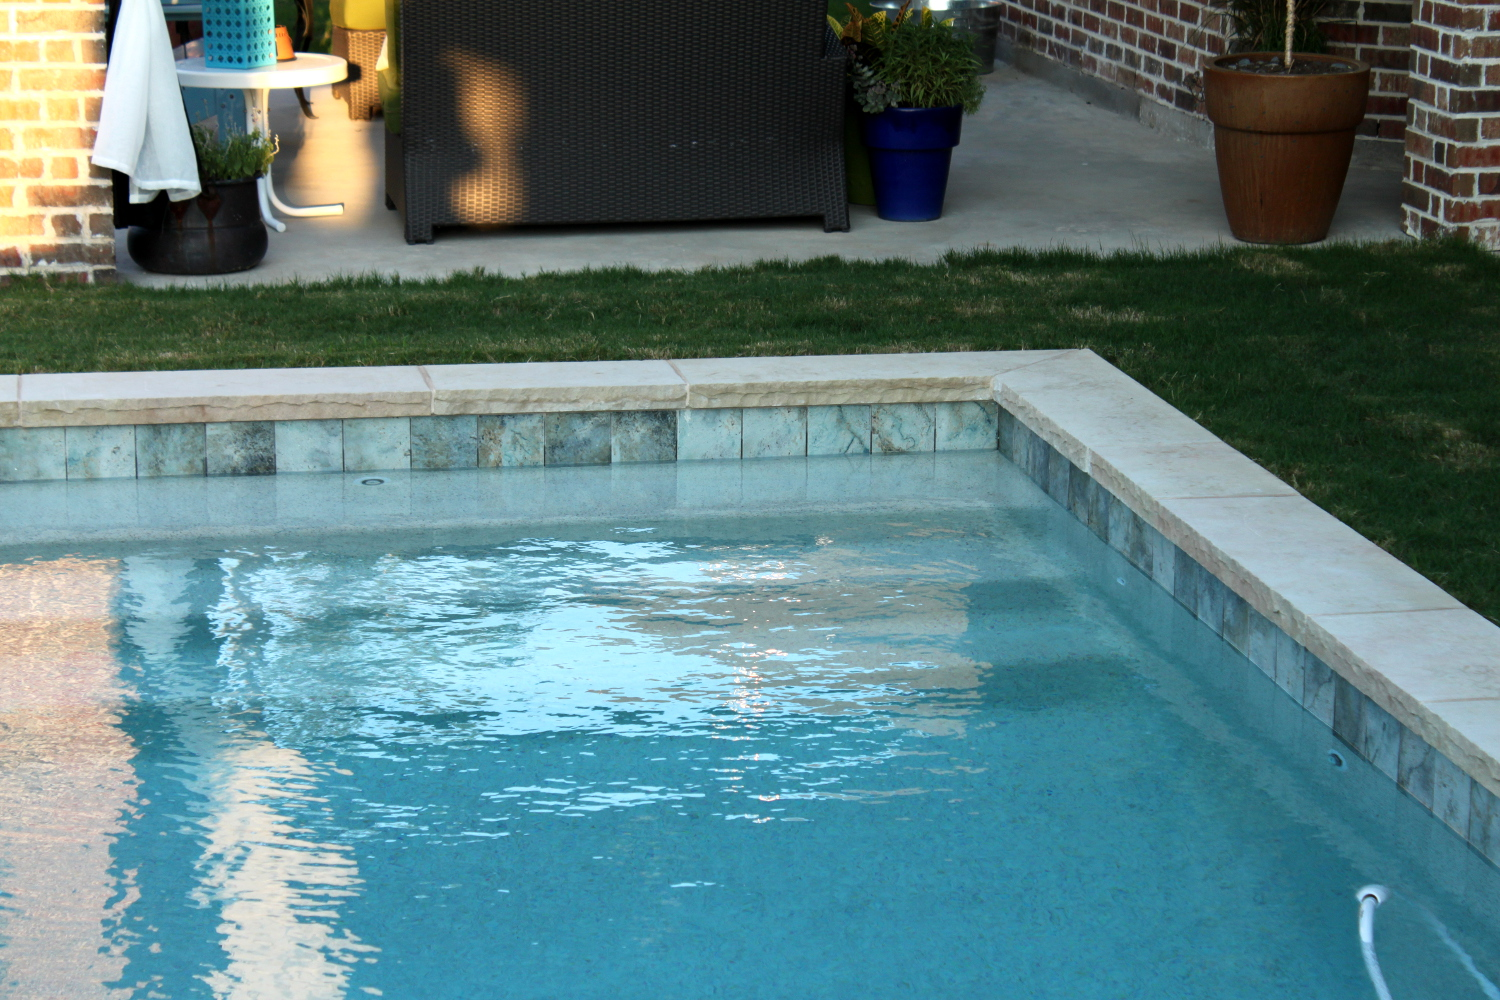 Pixelimpress The Backyard And Pool Reveal